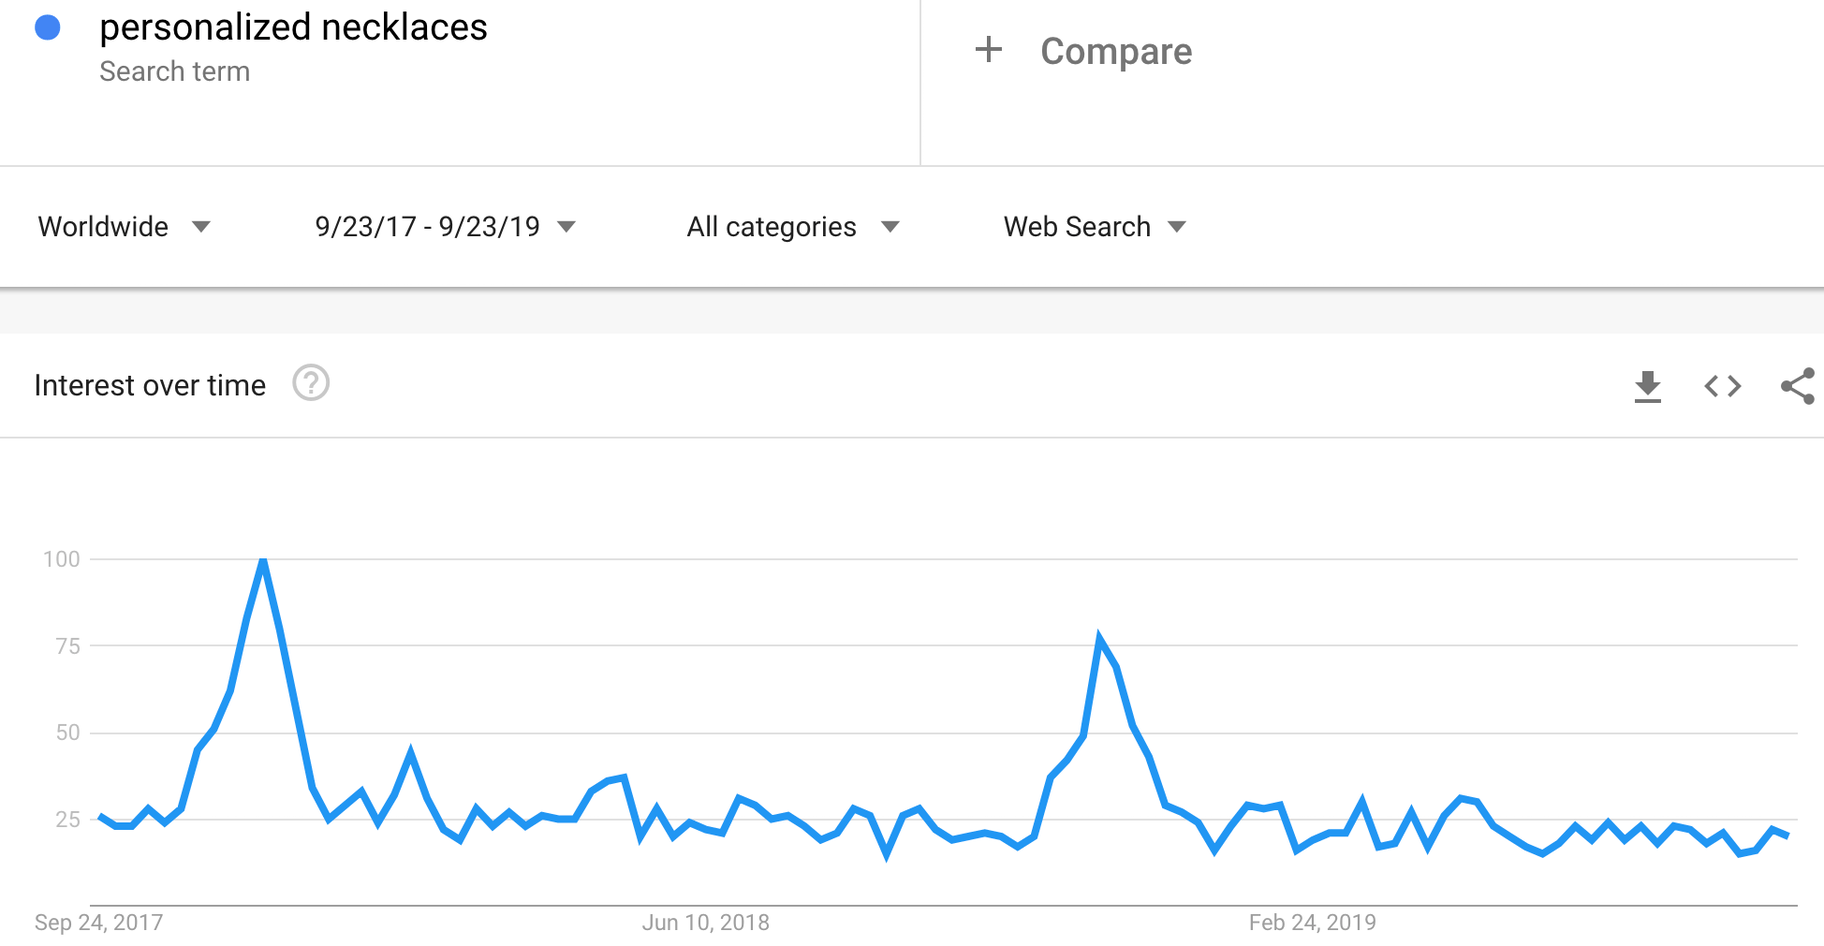 Google trends for 'personalized necklaces' showing spikes in December